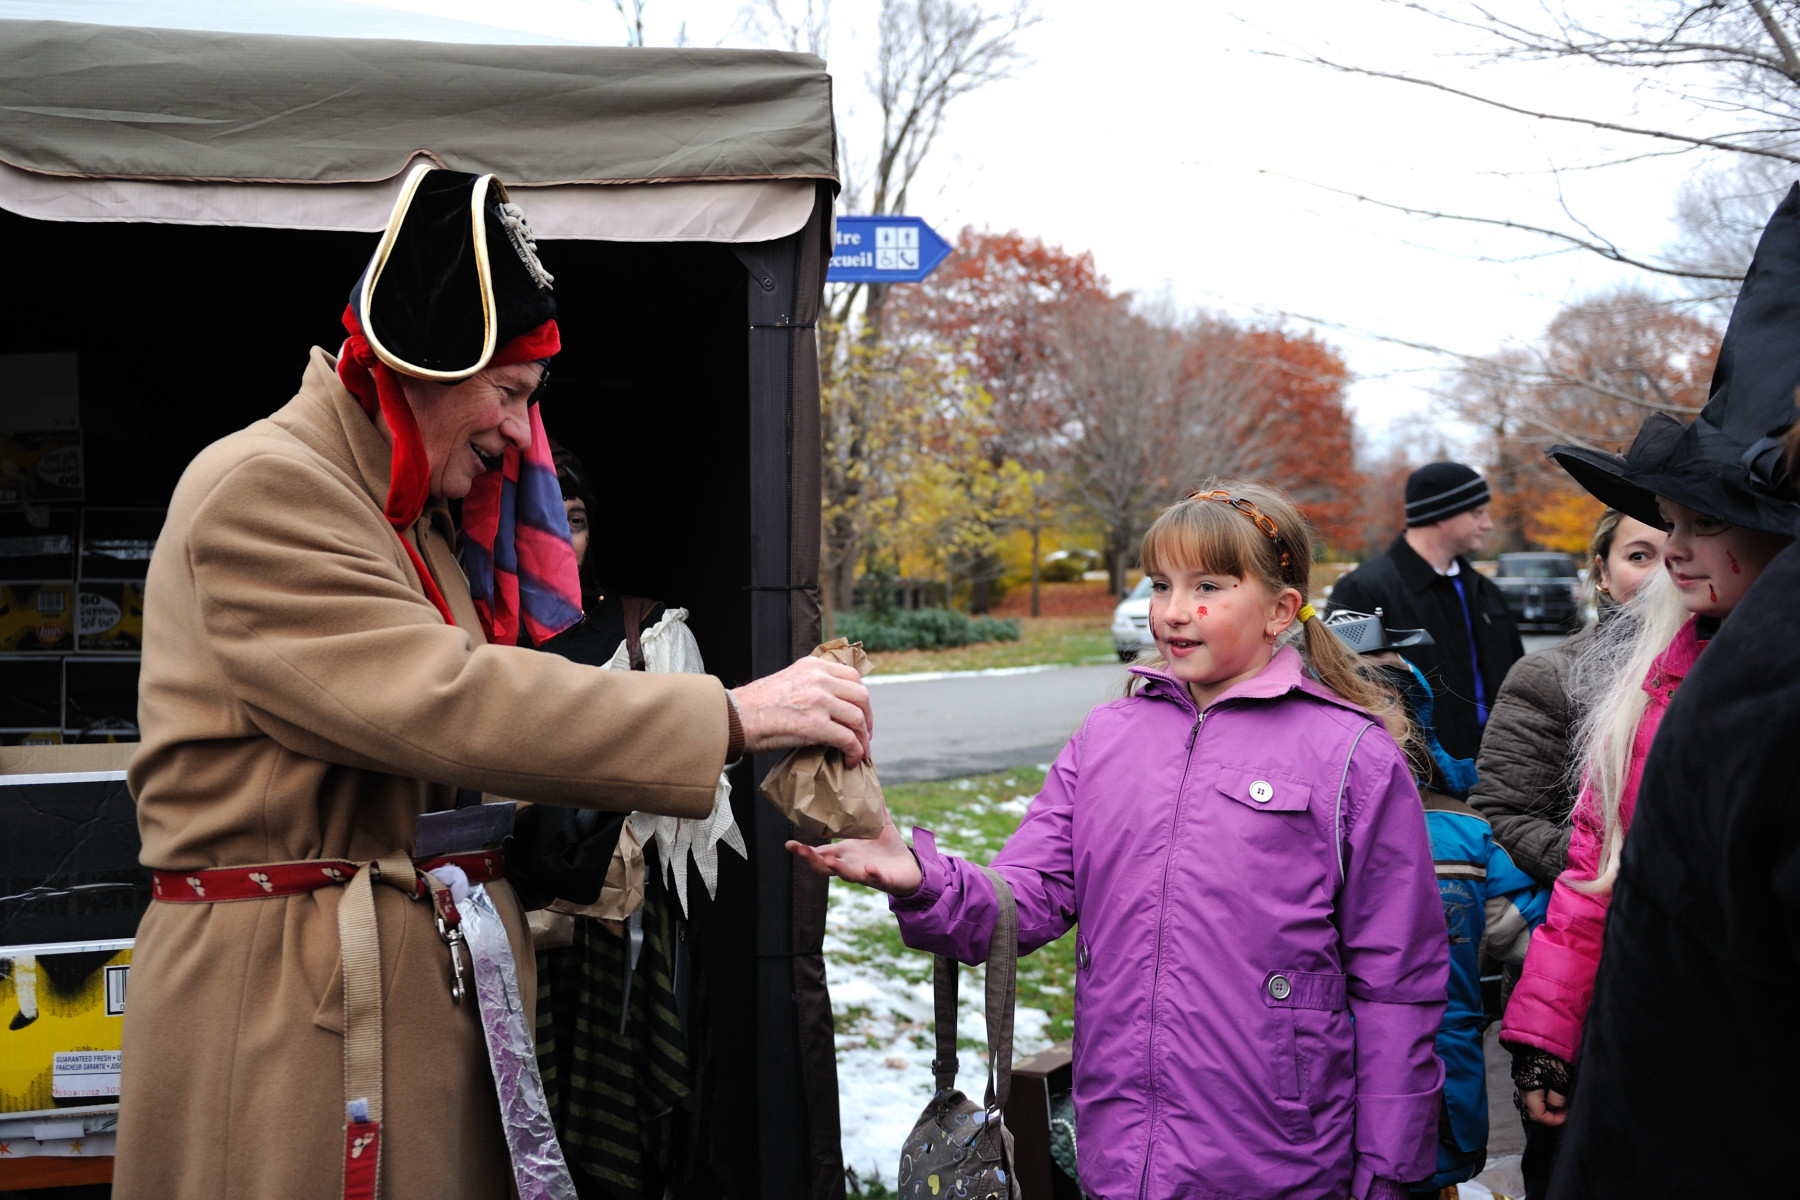 On Halloween day, His Excellency the Right Honourable David Johnston, Governor General of Canada, welcomed families of the Ottawa-Gatineau Region to Rideau Hall.